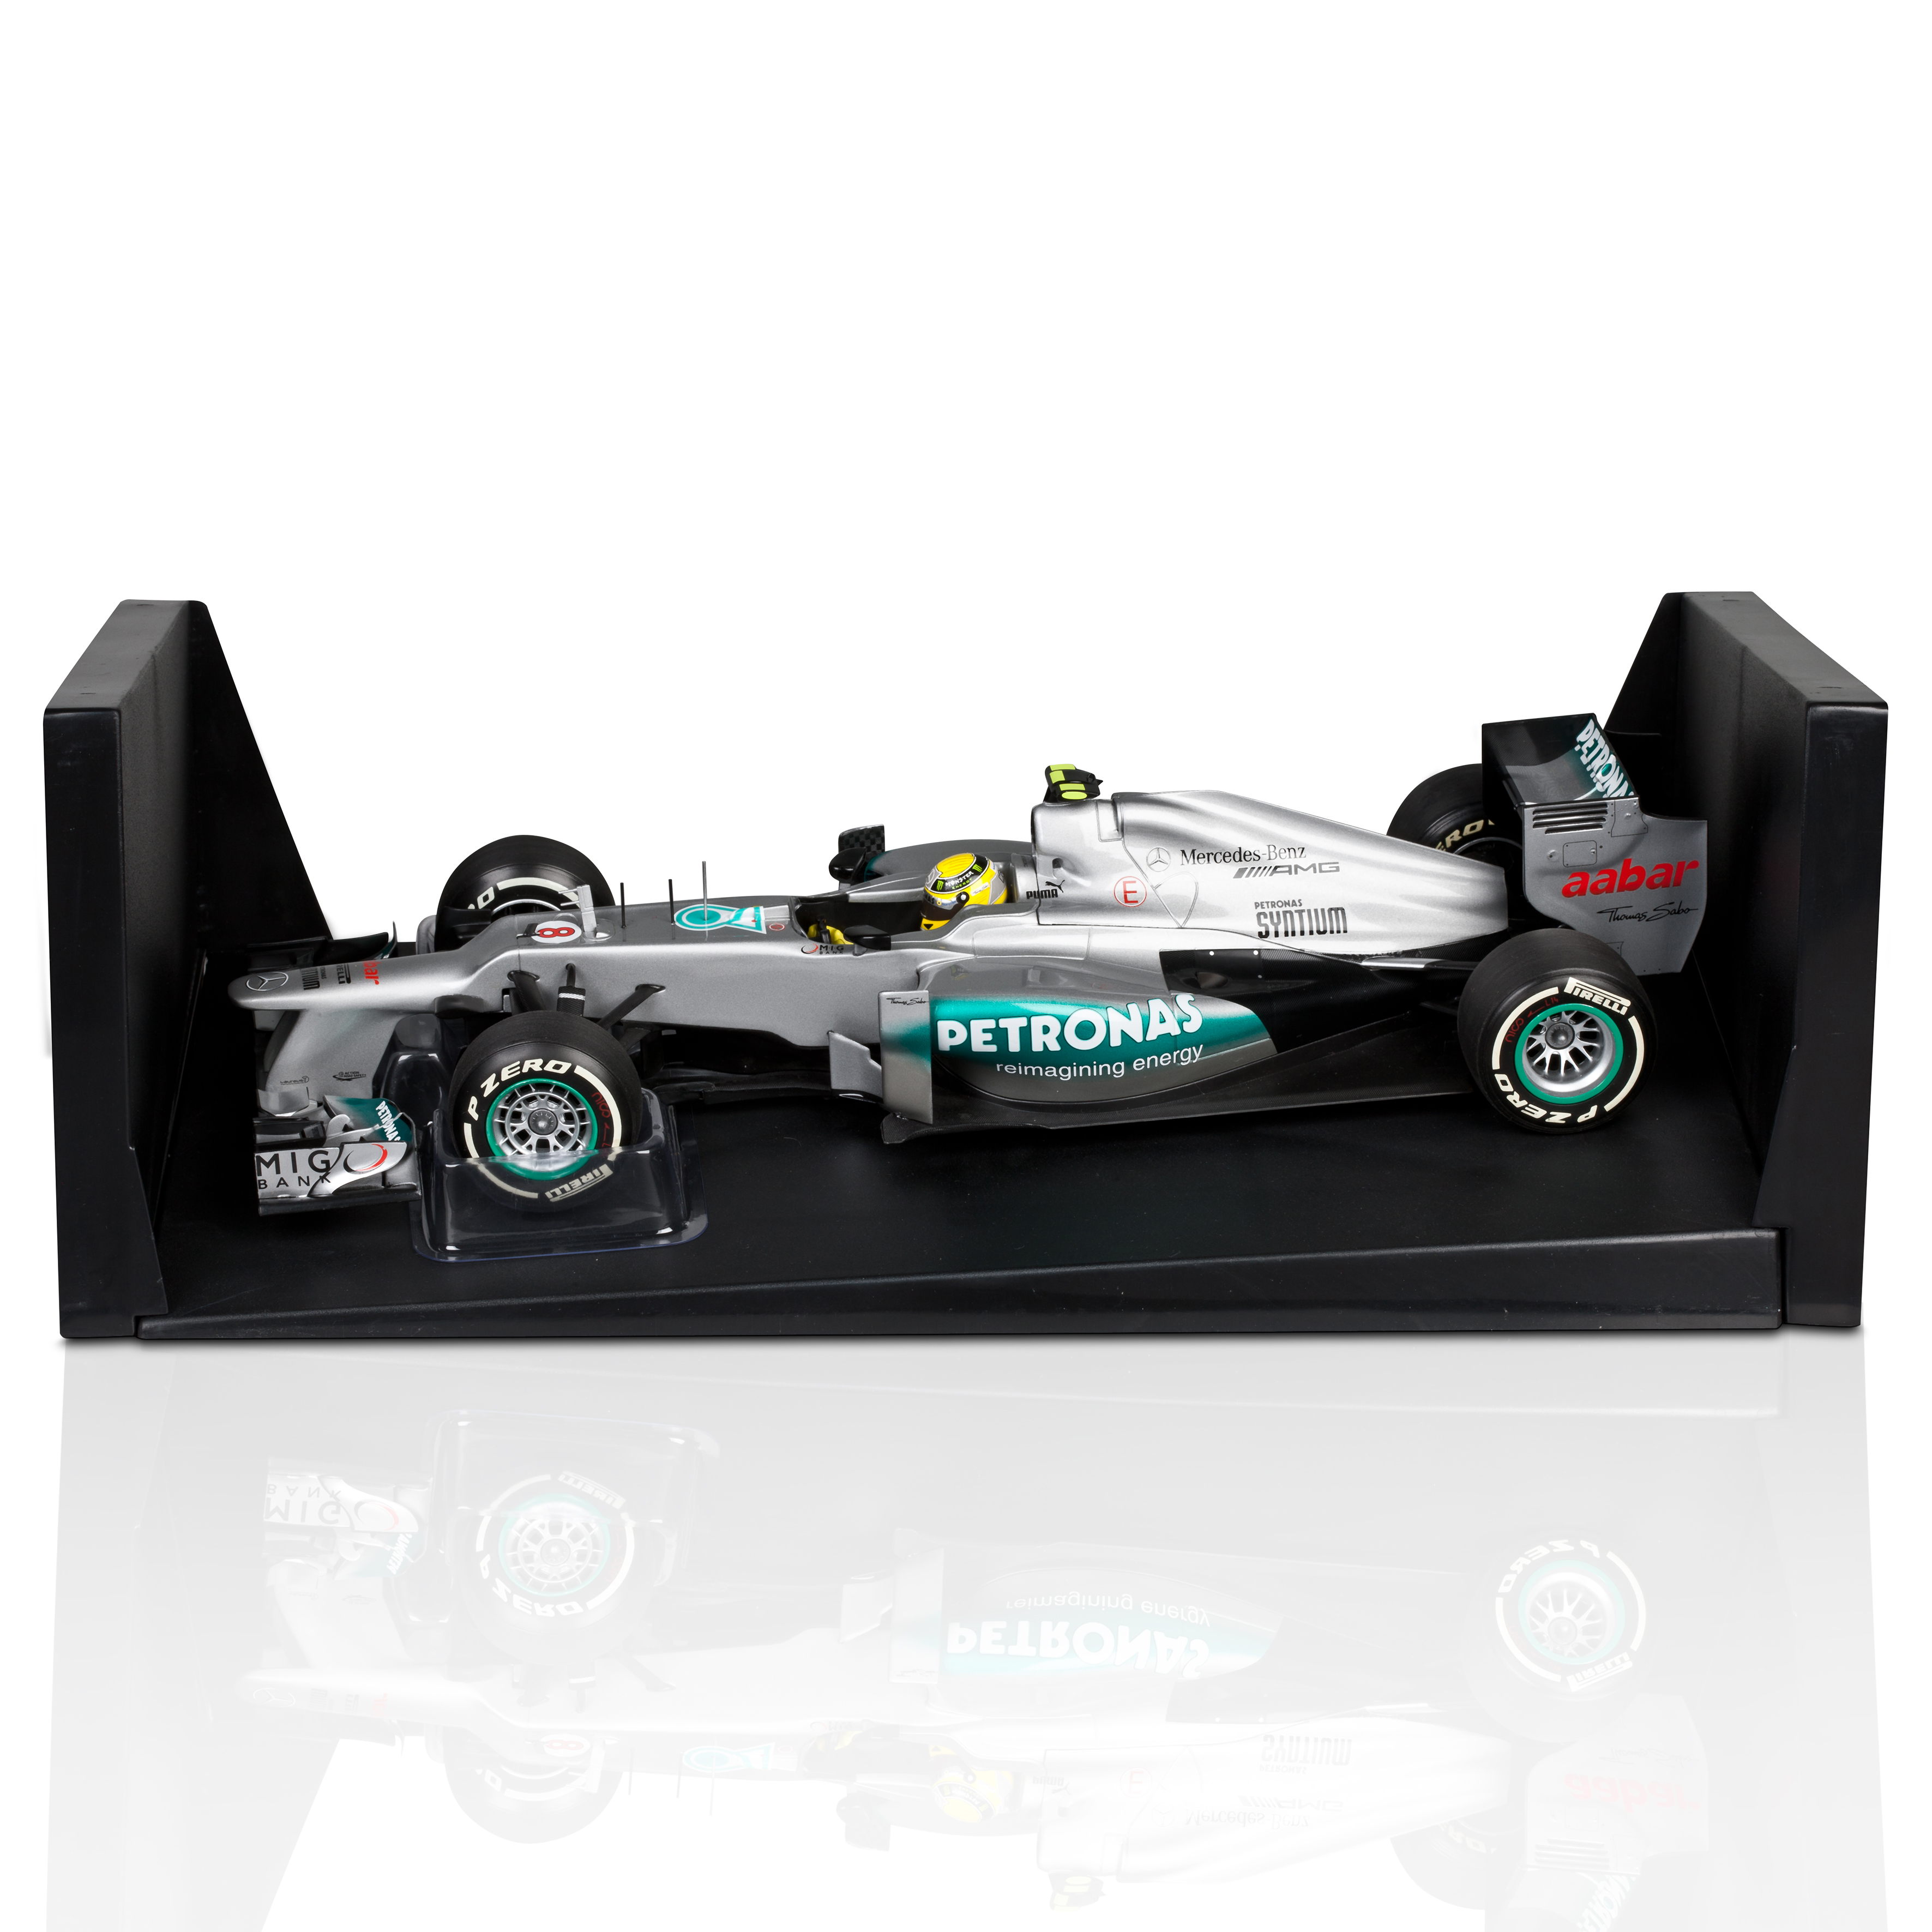 Mercedes AMG Petronas F1 Team W03 2012 Nico Rosberg - 1st F1 Win Chinese GP - Limited Edition 1:18 Scale